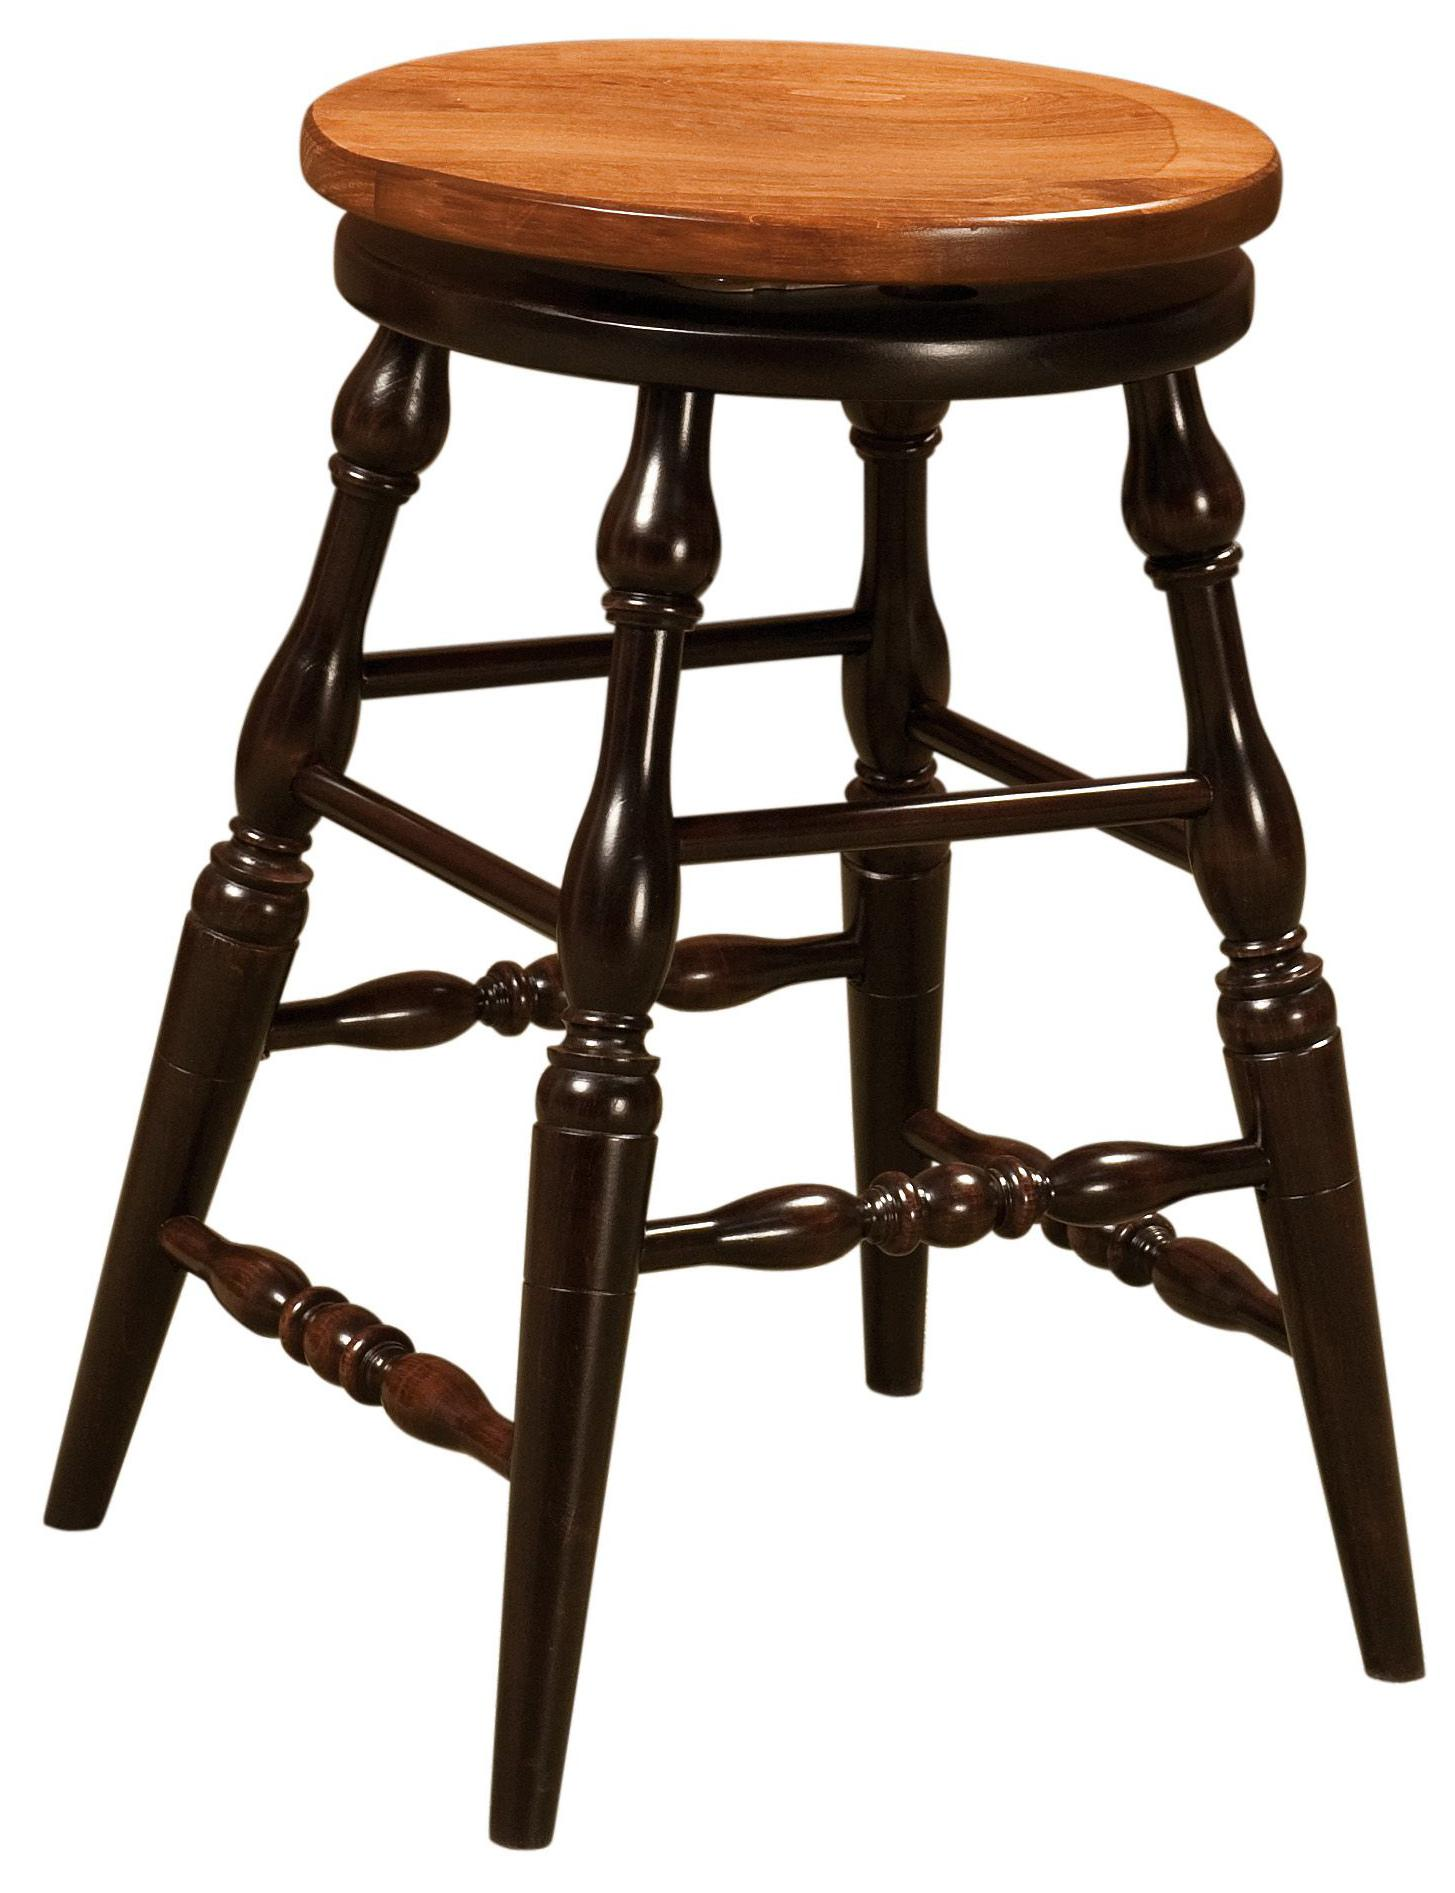 Bar Chairs Smith Bar Chair by Amish Impressions by Fusion Designs at Mueller Furniture